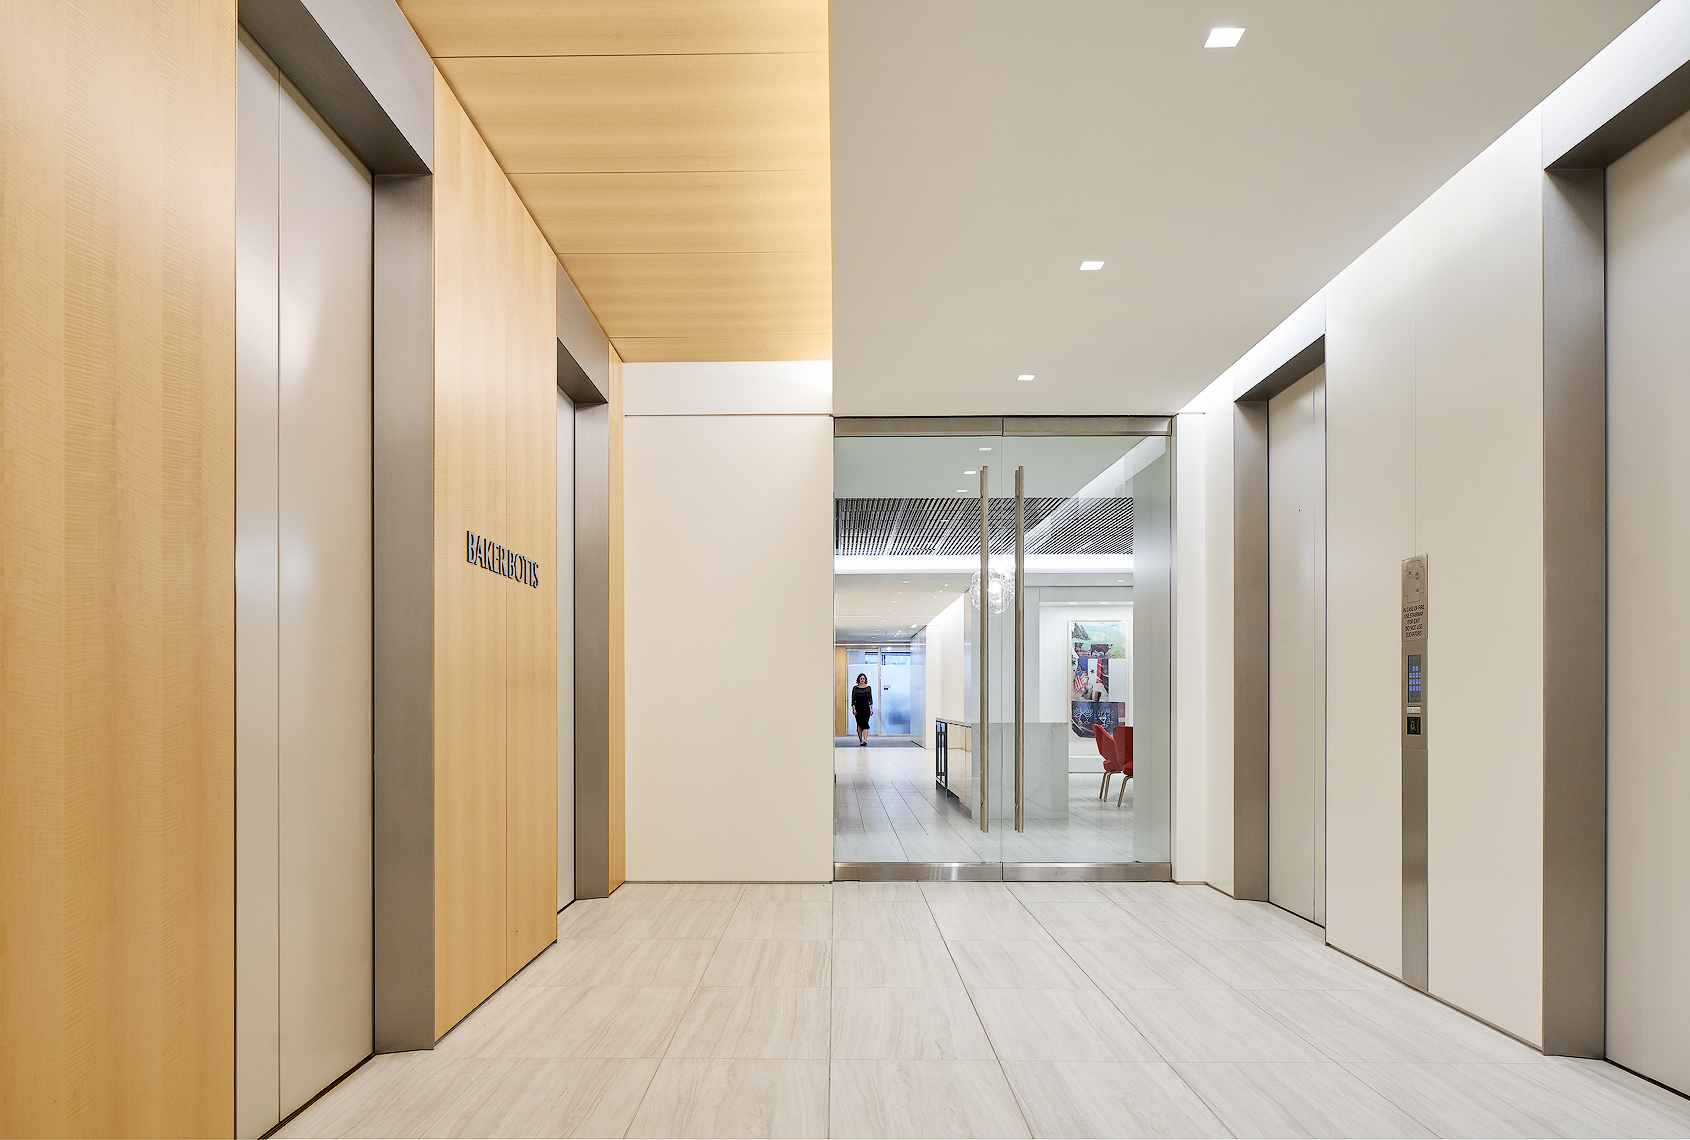 BakerBotts law firm dallas texas bt Gensler photography by Dror Baldinger